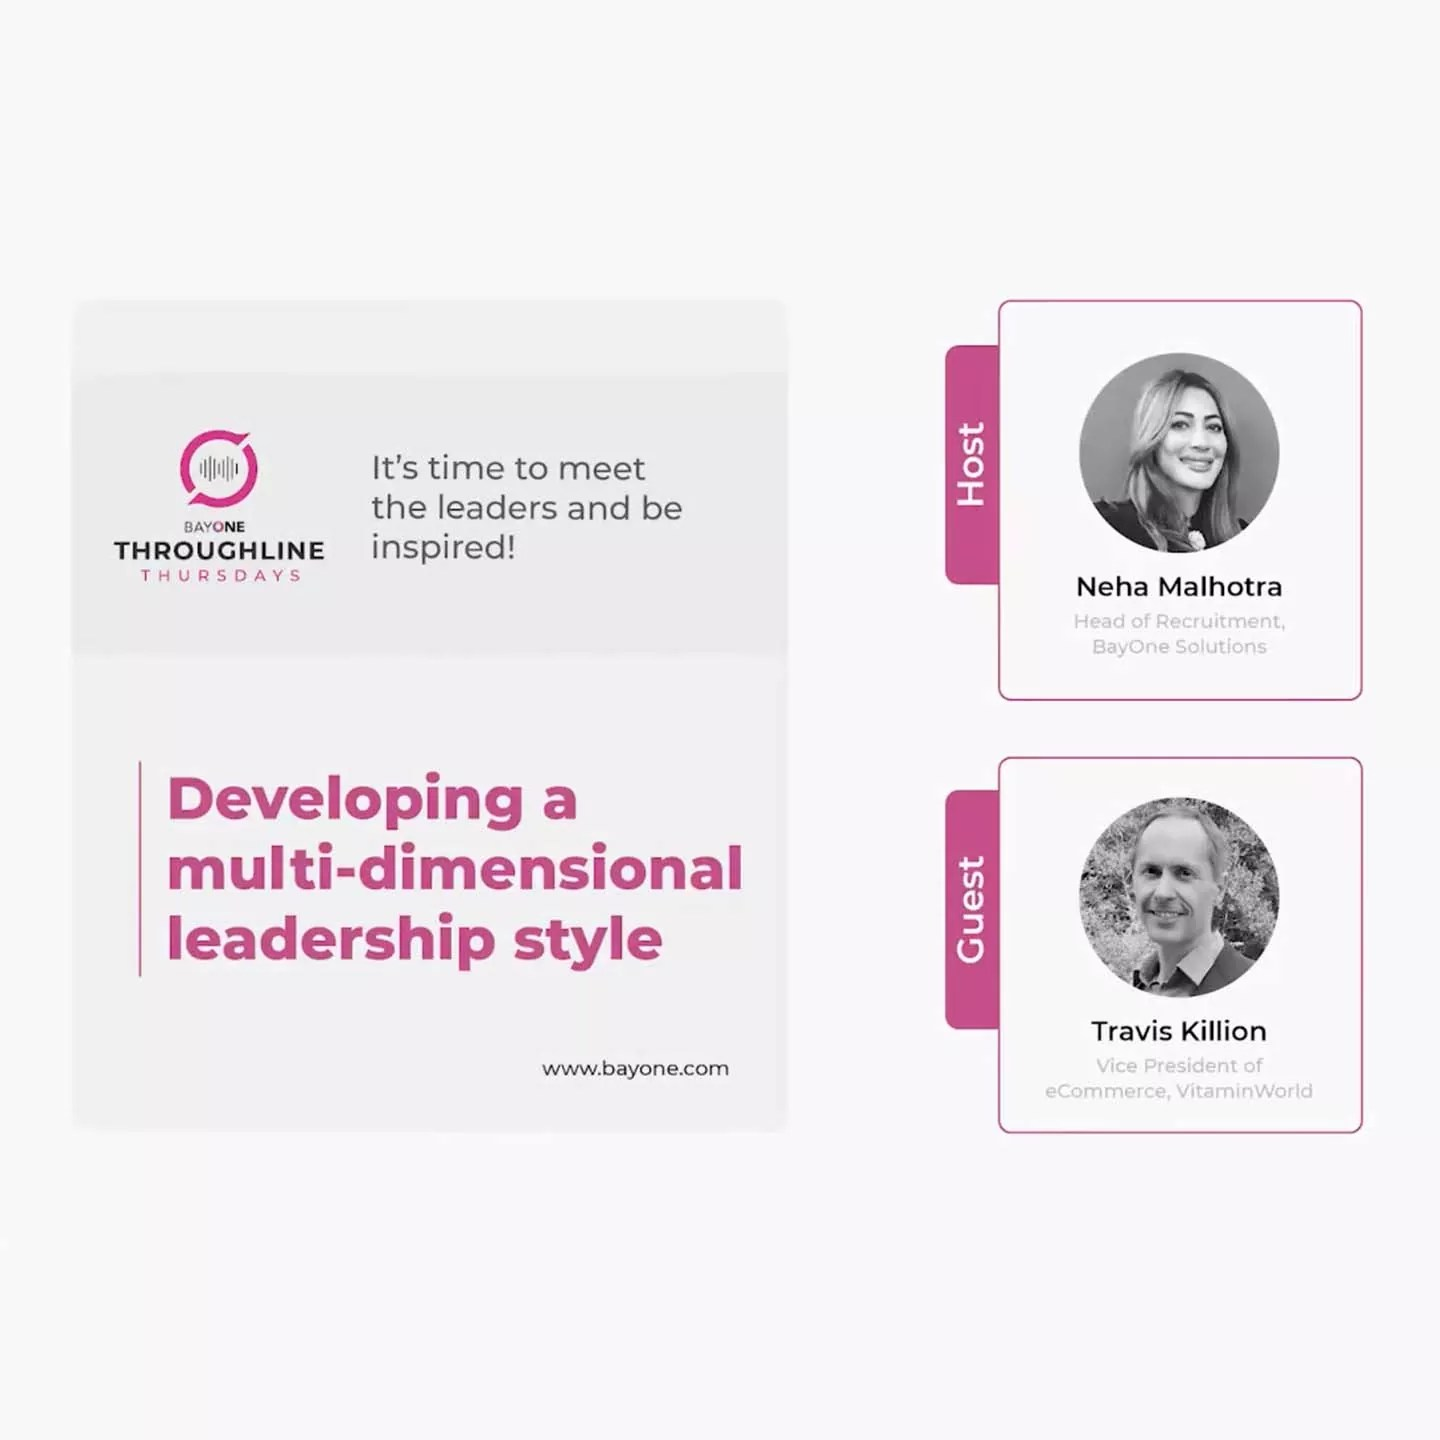 Developing a Multi-dimensional Leadership Style